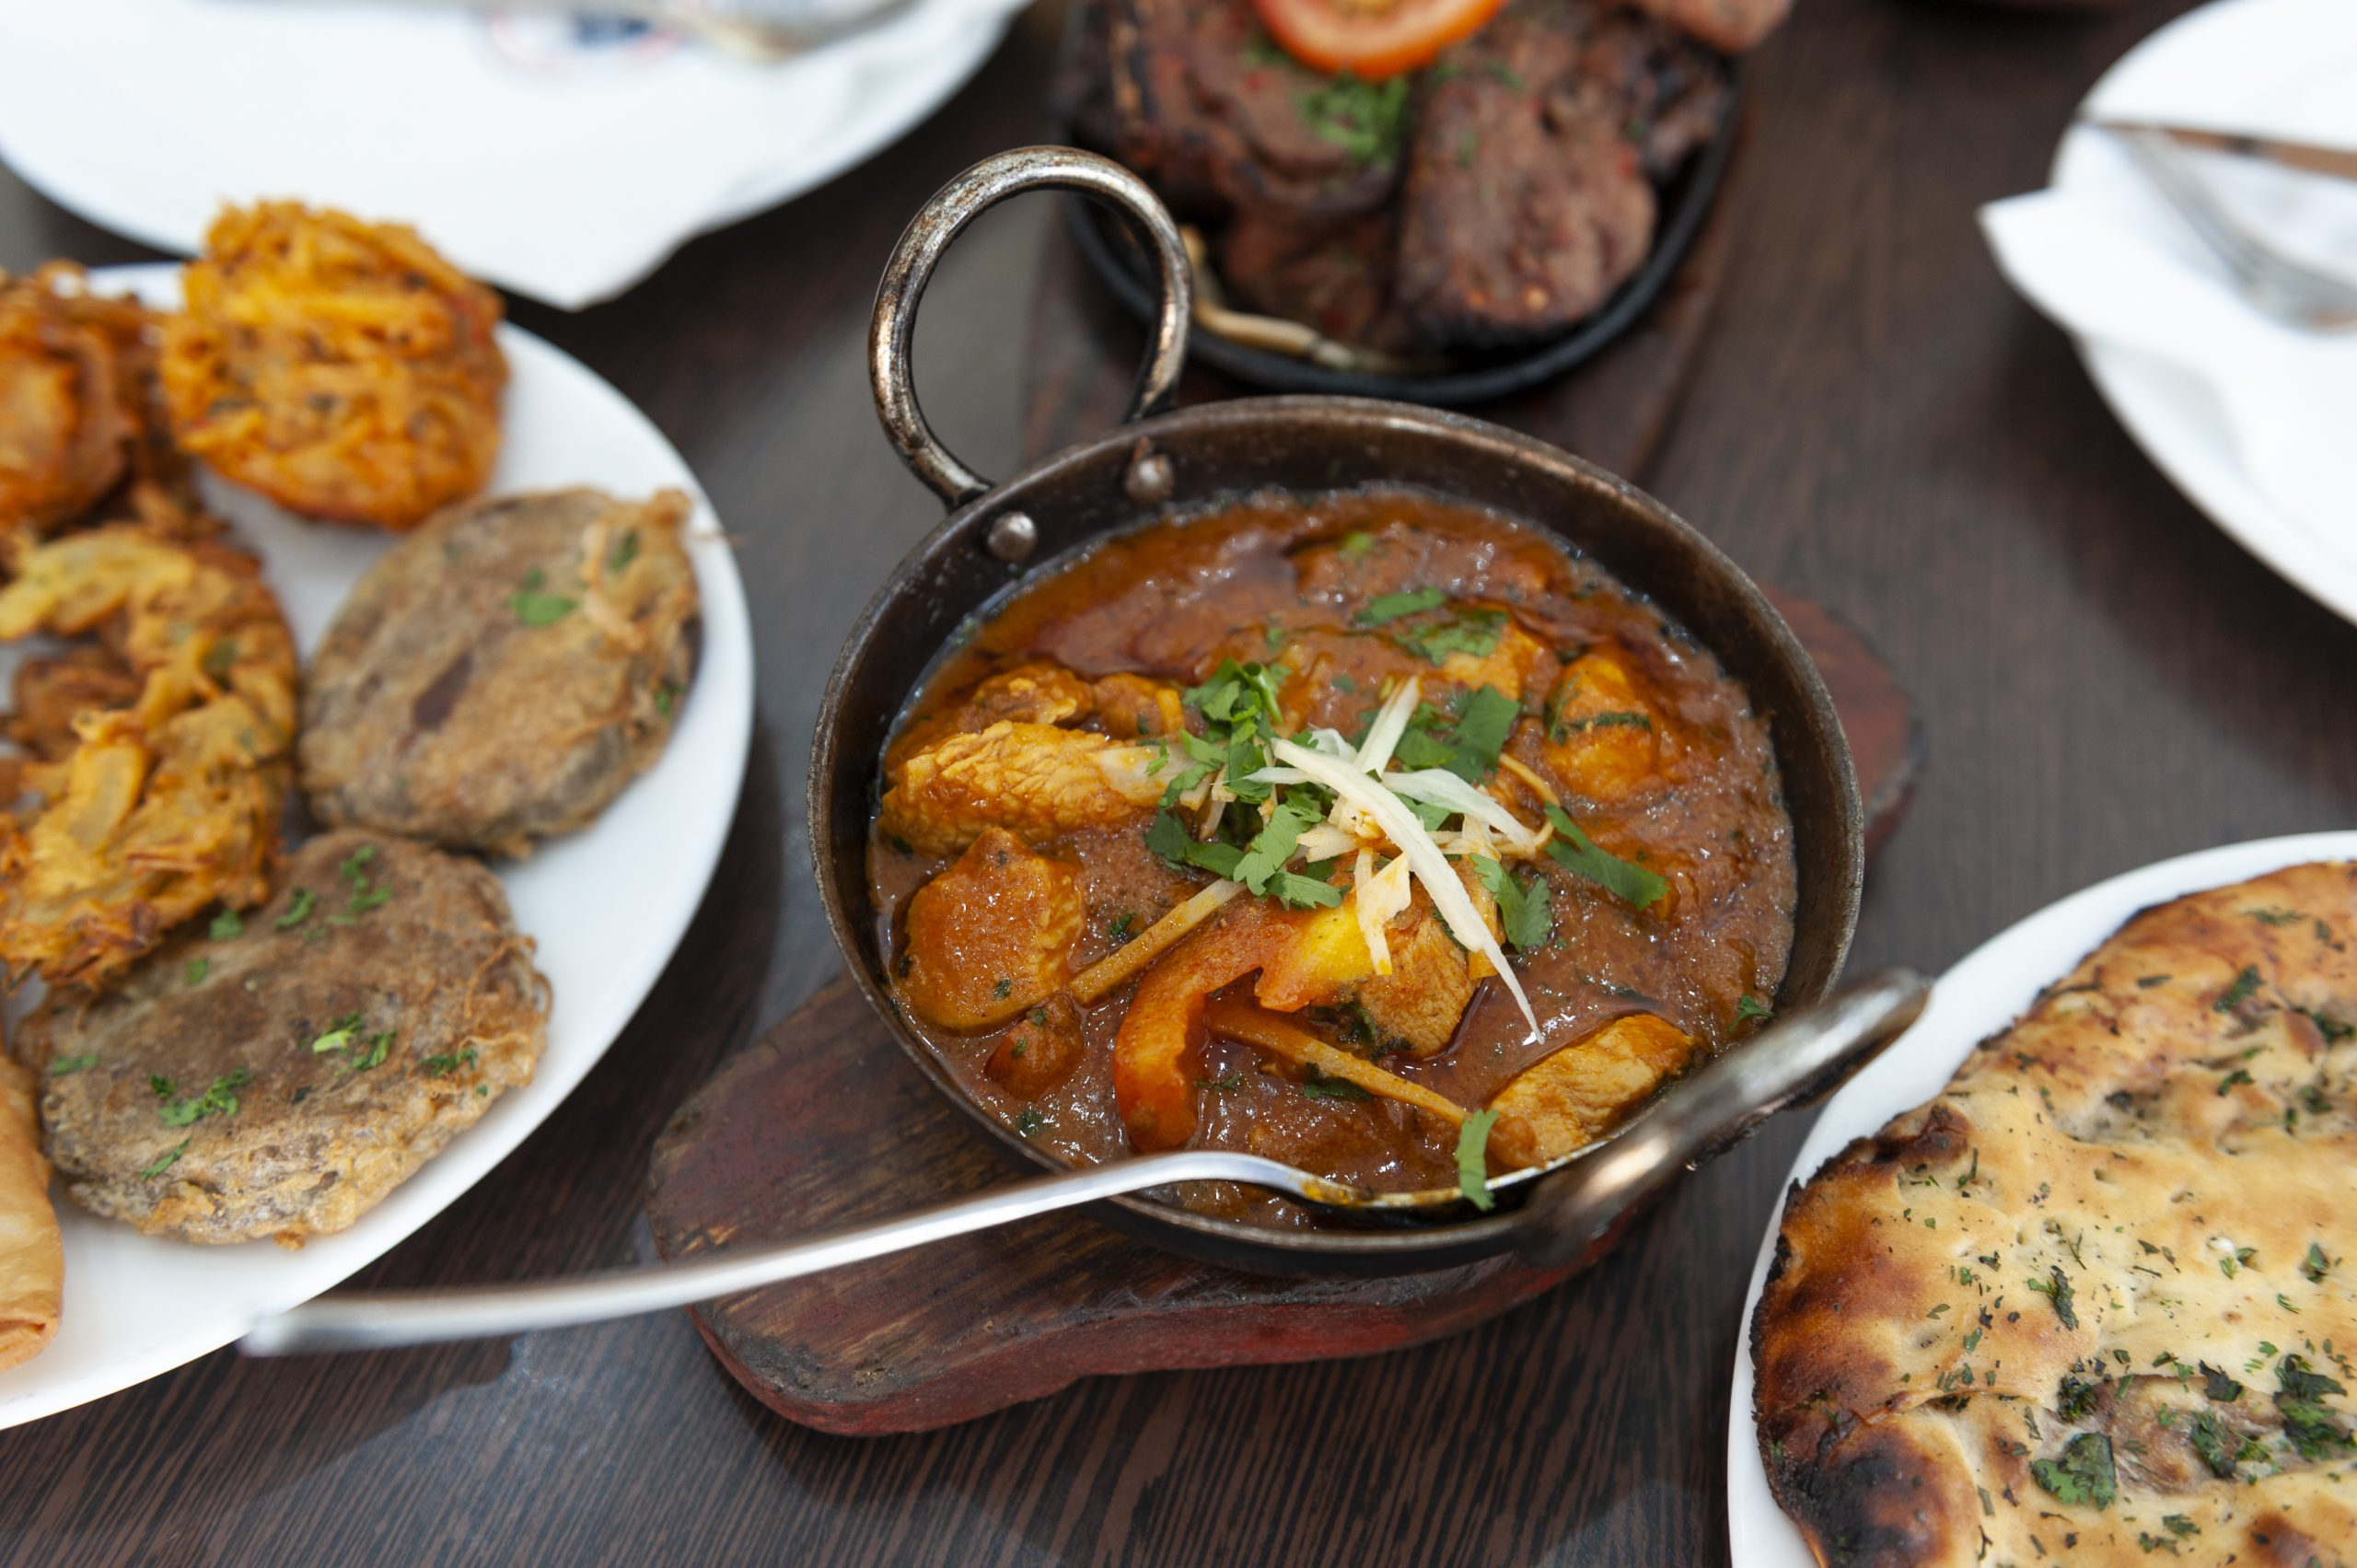 Flavourful Pakistani curry and naan